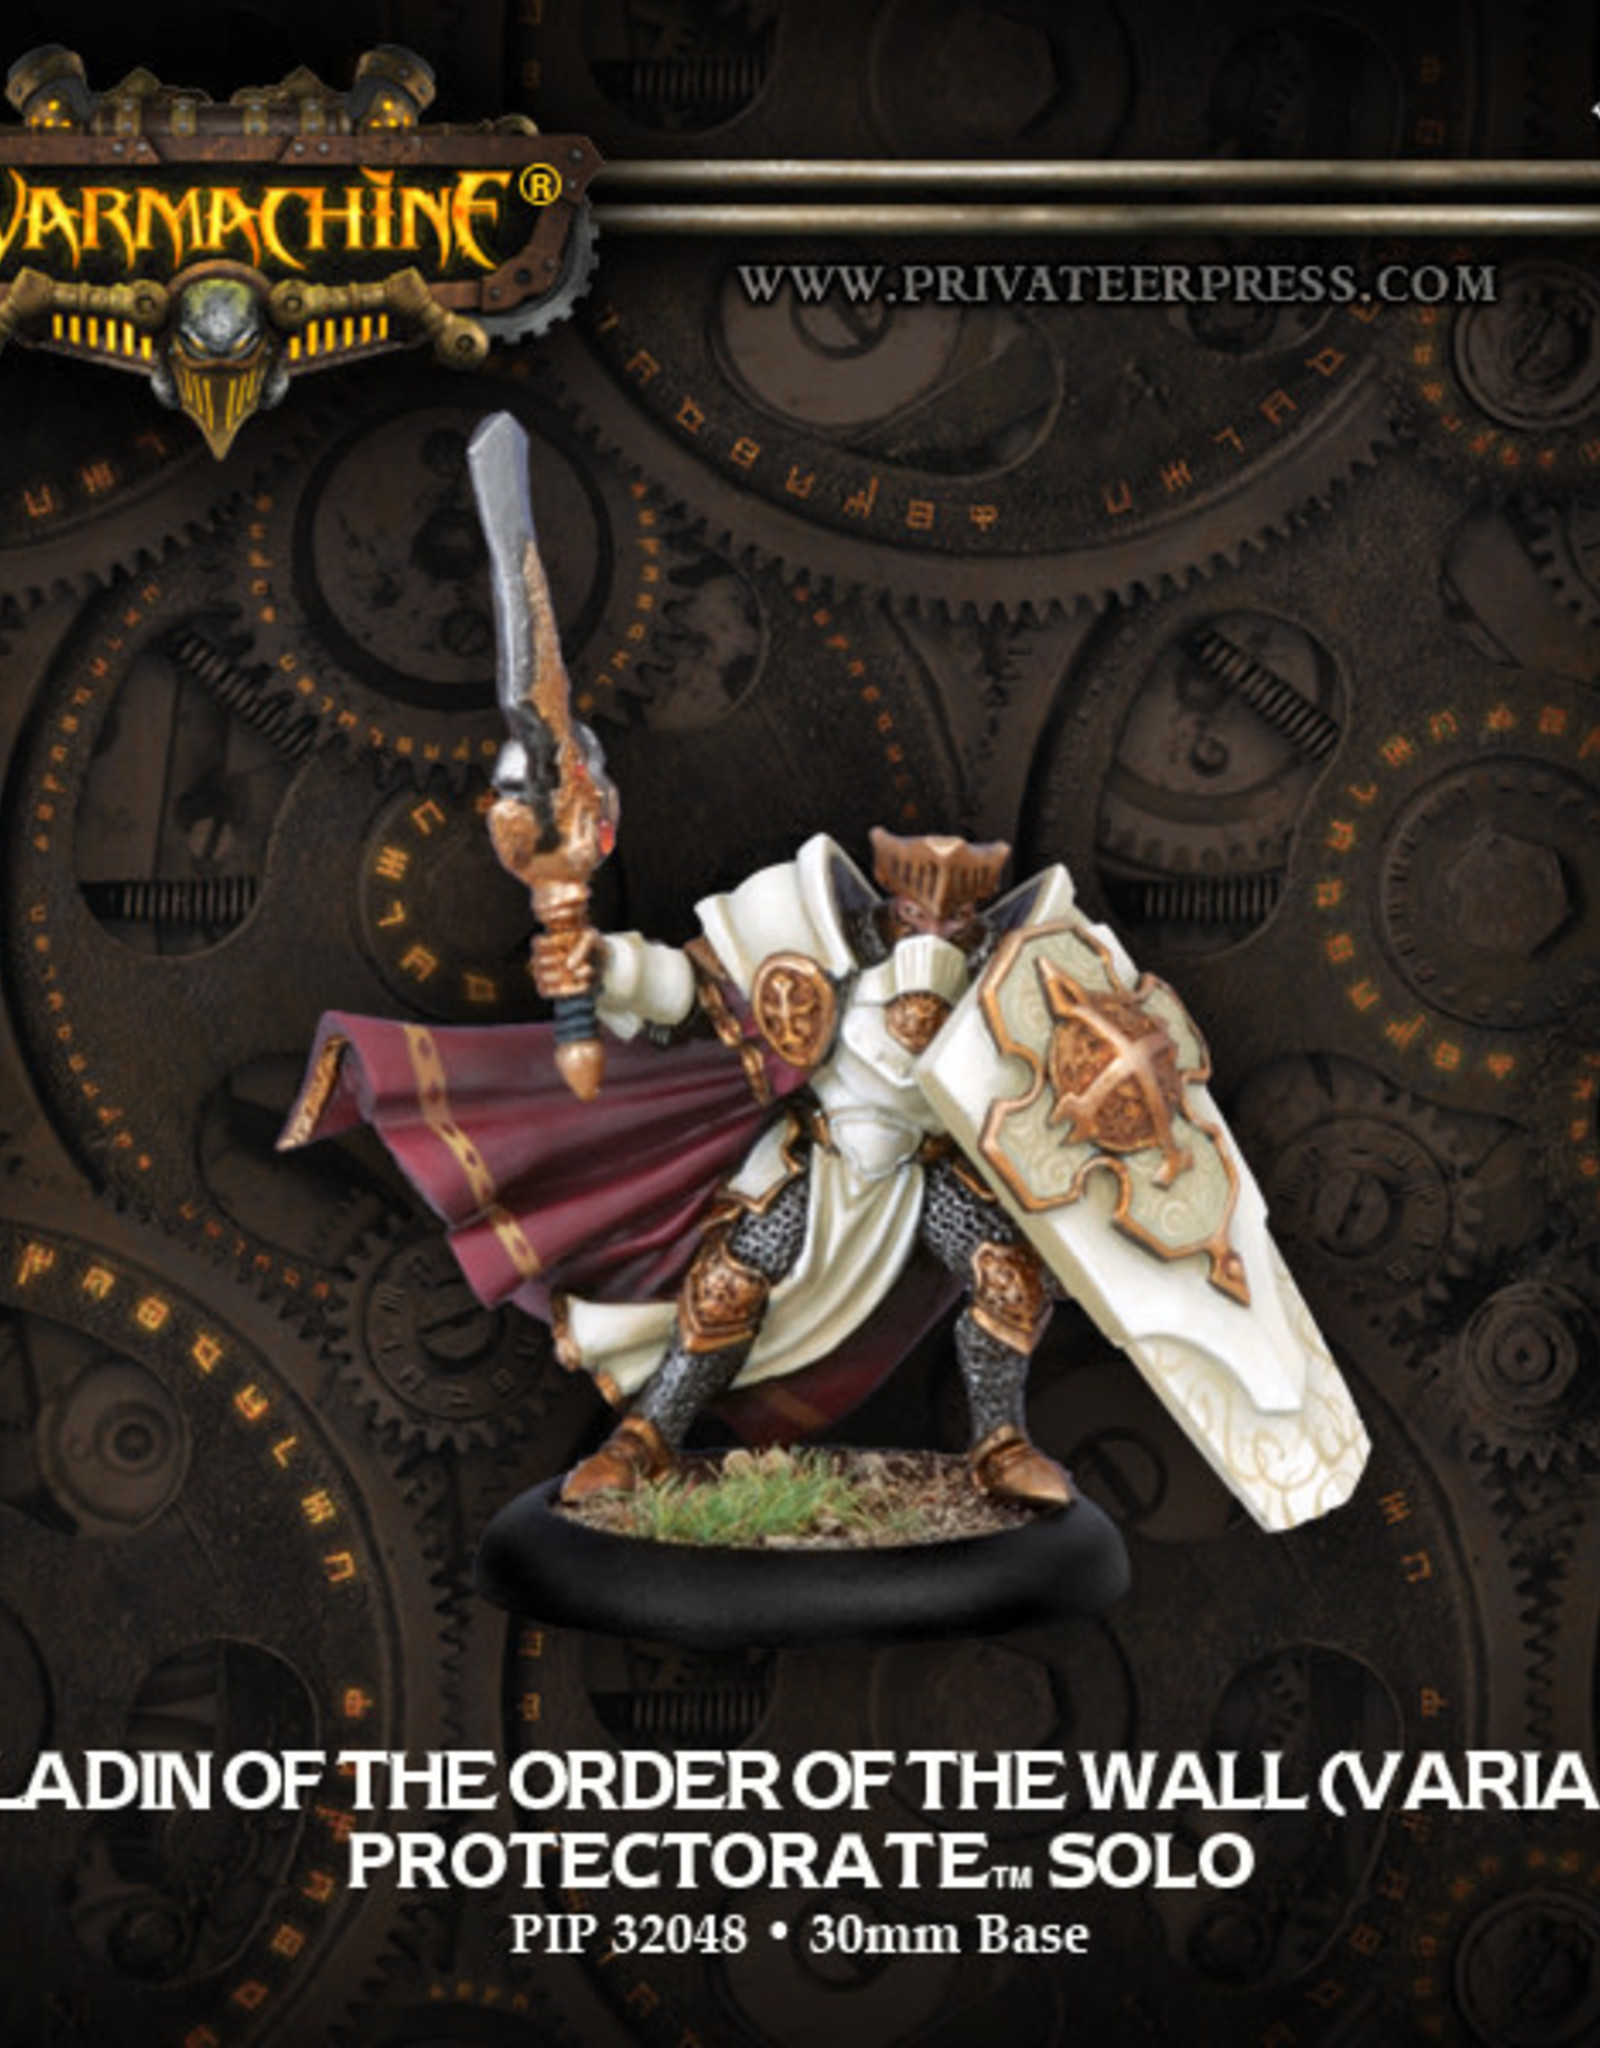 Warmachine Protectorate - Paladin of the Wall